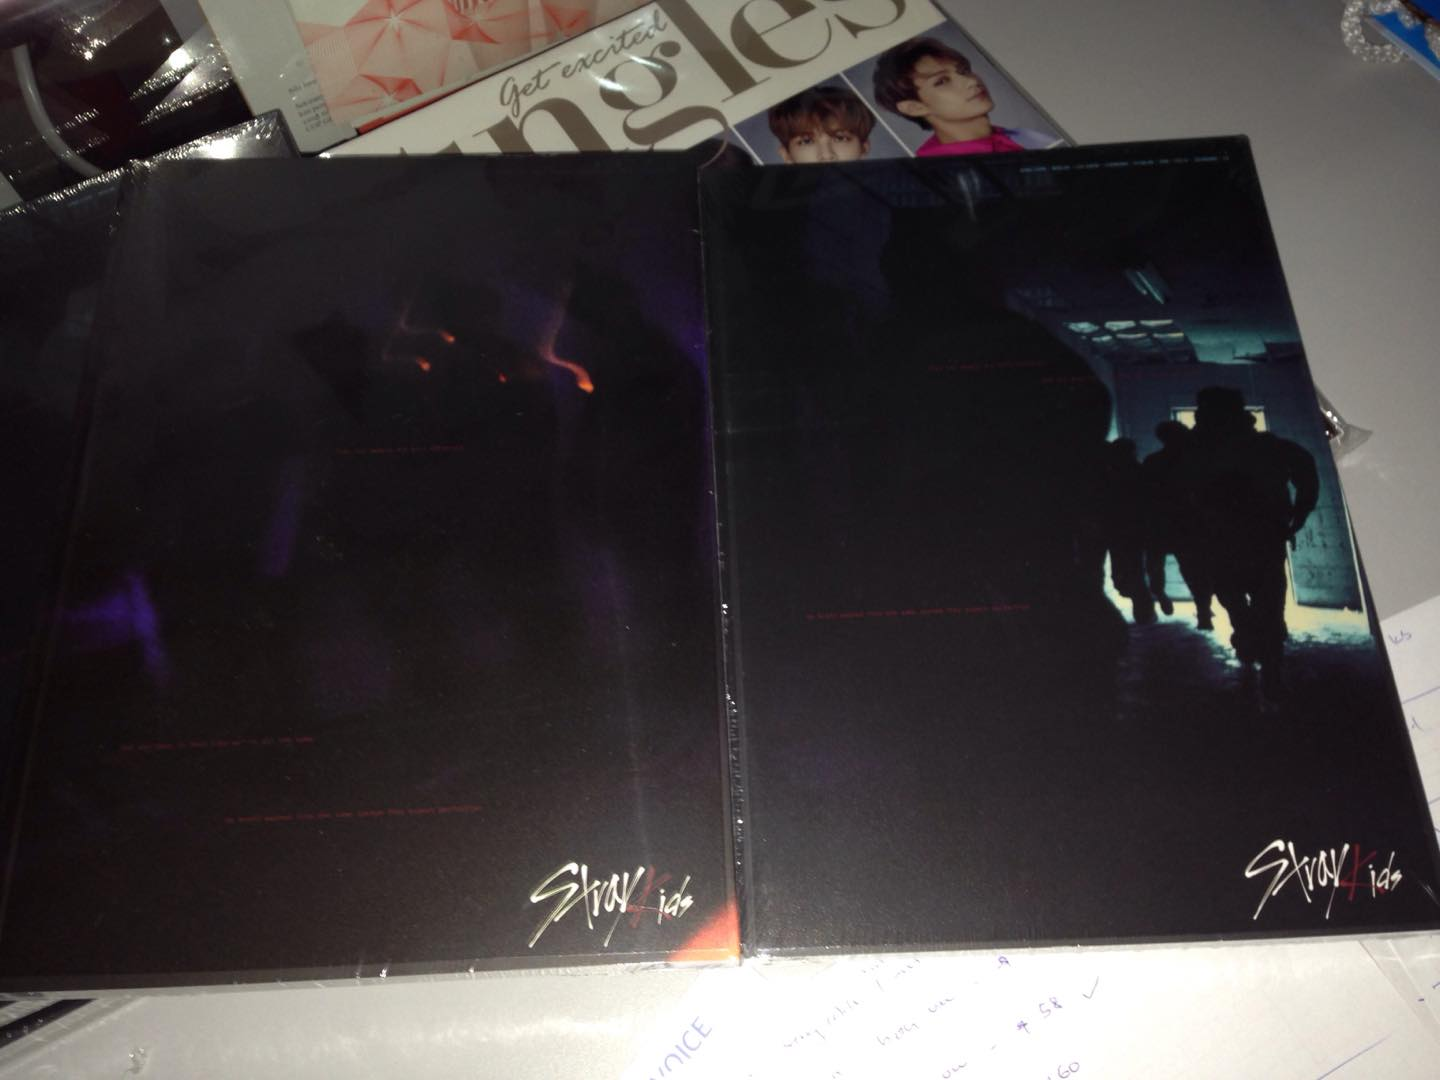 SKY ZONE: Stray Kids K-pop Music CD, DVD & Official Goods